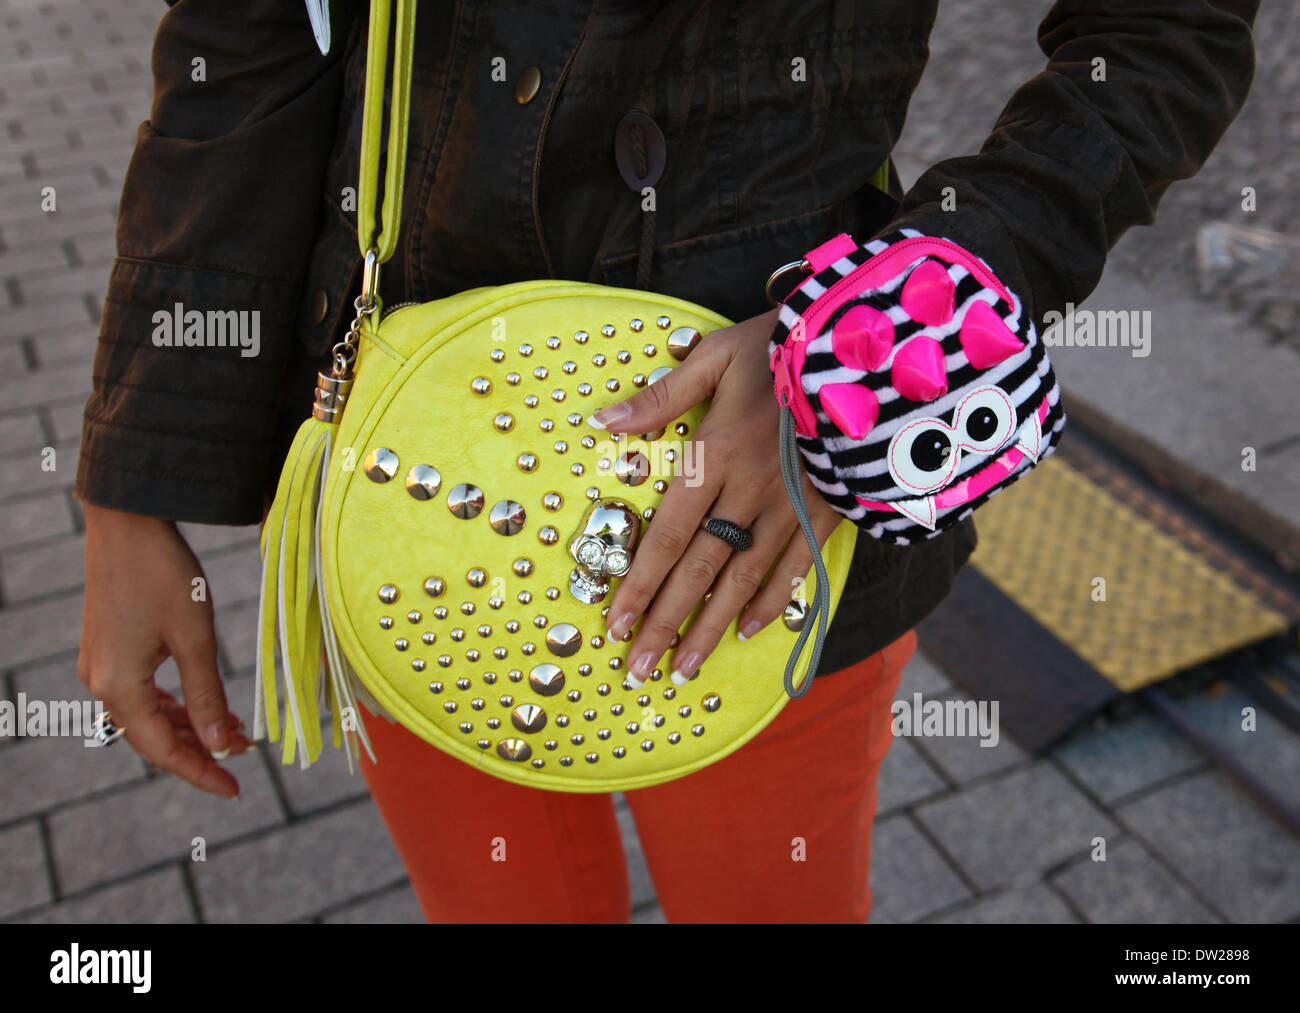 A female Italian tourist with colorfull bags standing at the Brandenburg Gate in Berlin, September 29, 2013. More and more tourists come to the German capital every year. This photo is part of a series on tourism in Berlin. Photo: Wolfram Steinberg dpa - Stock Image